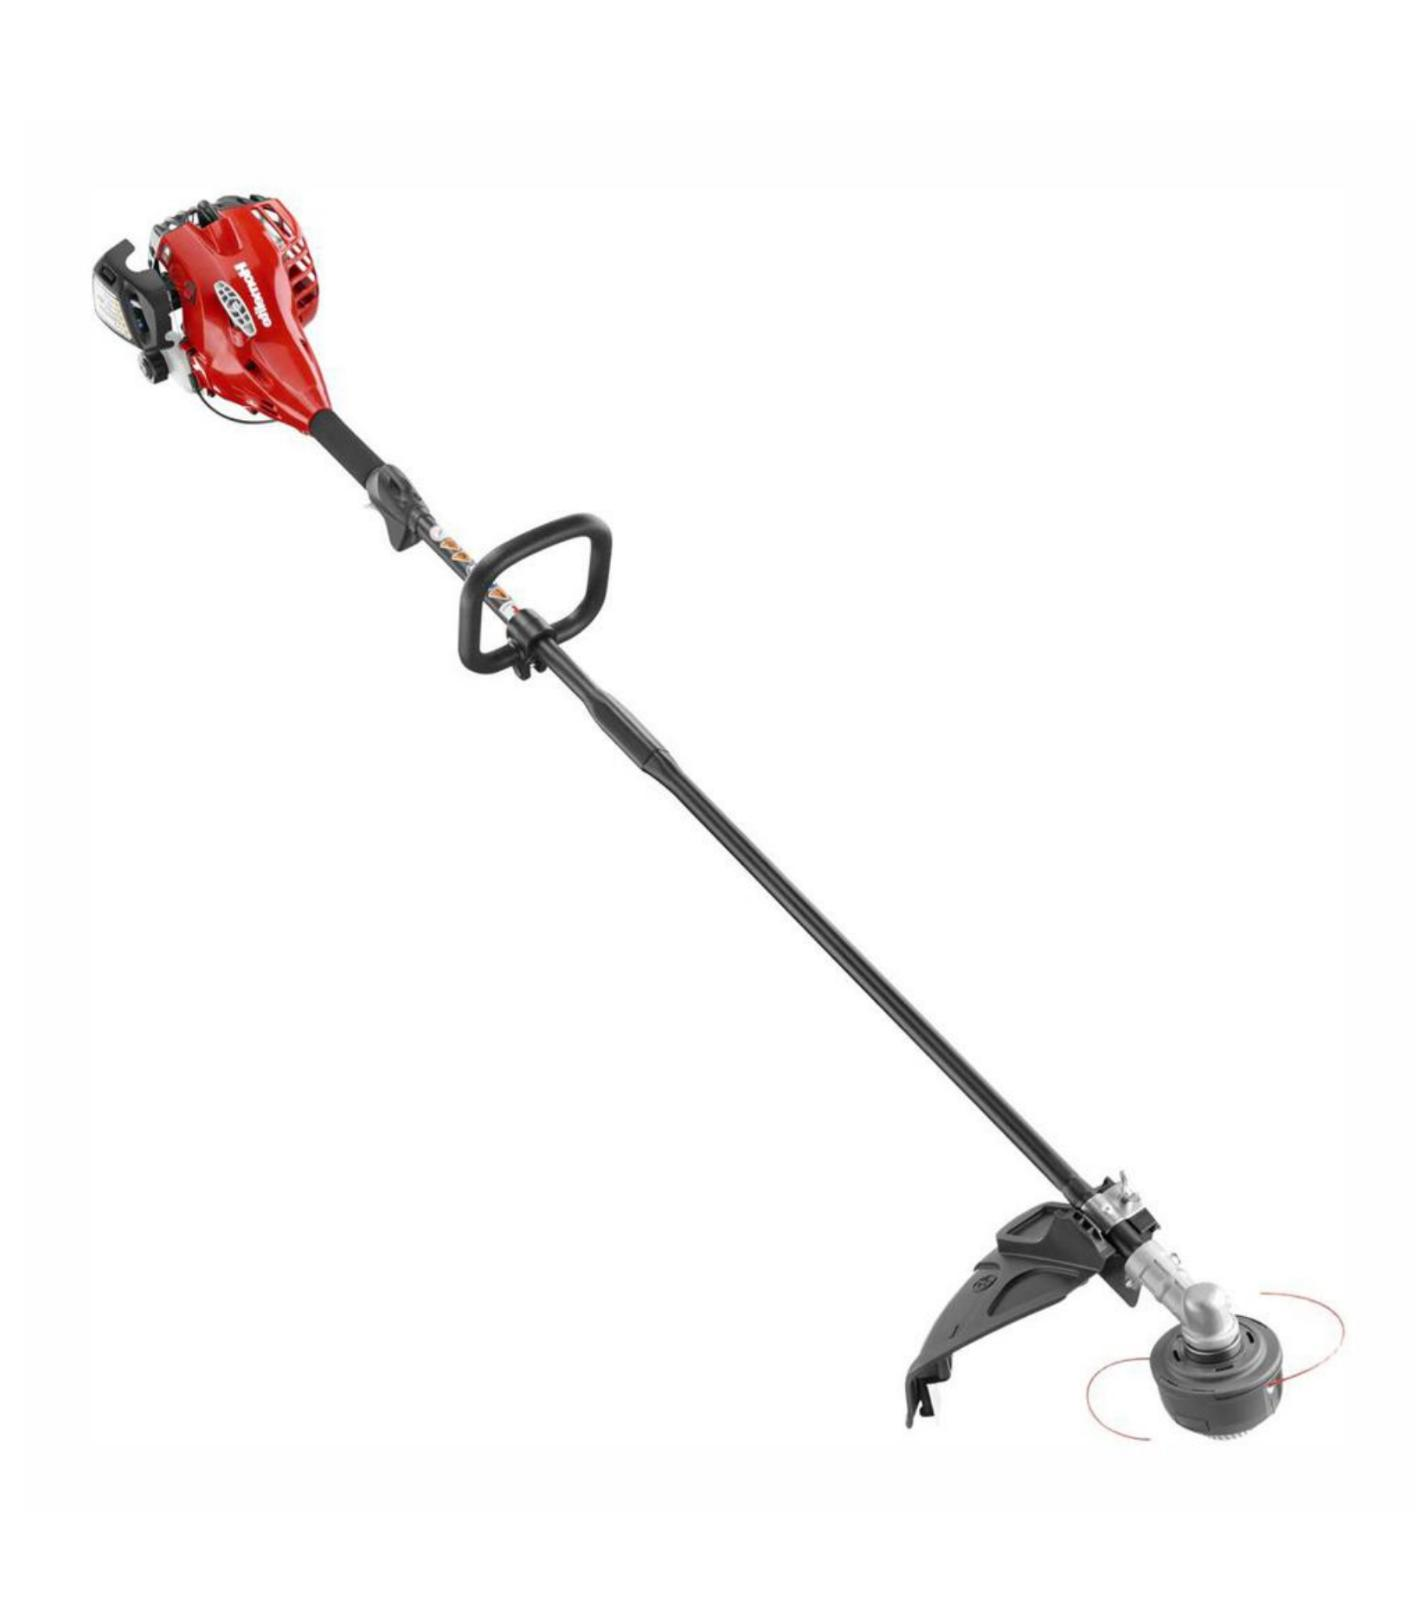 straight shaft gas trimmer 2 cycle 26